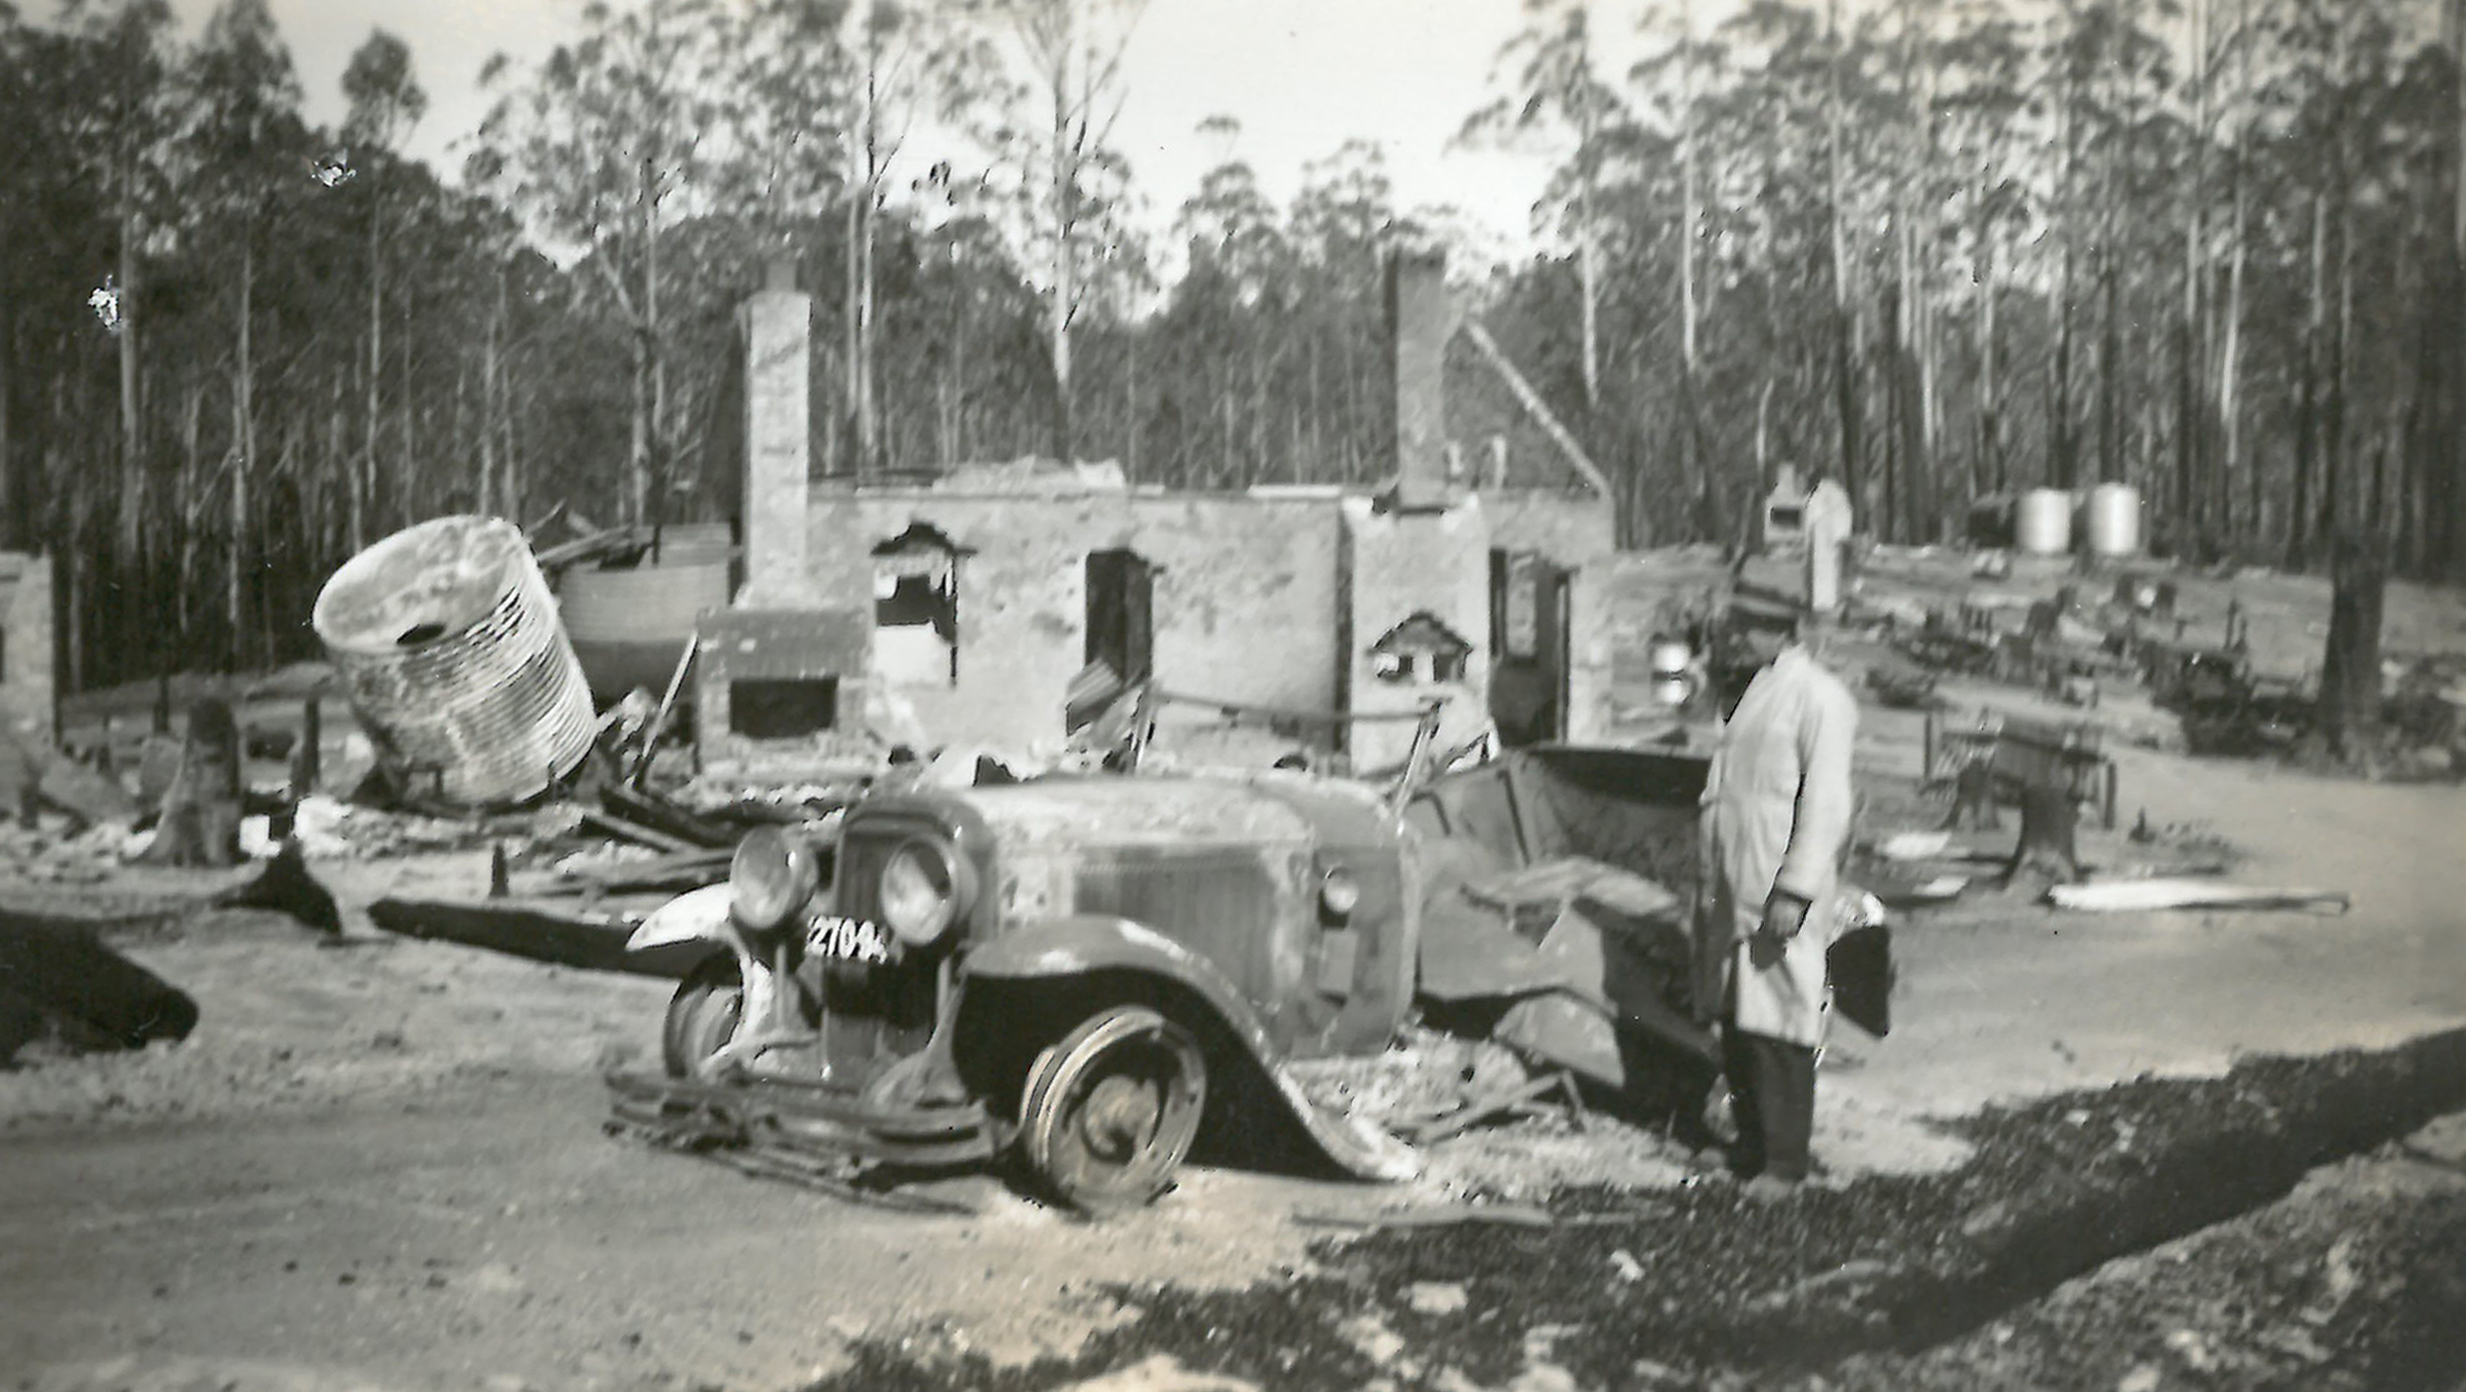 black and white photo of burned hut and car with man standing in front